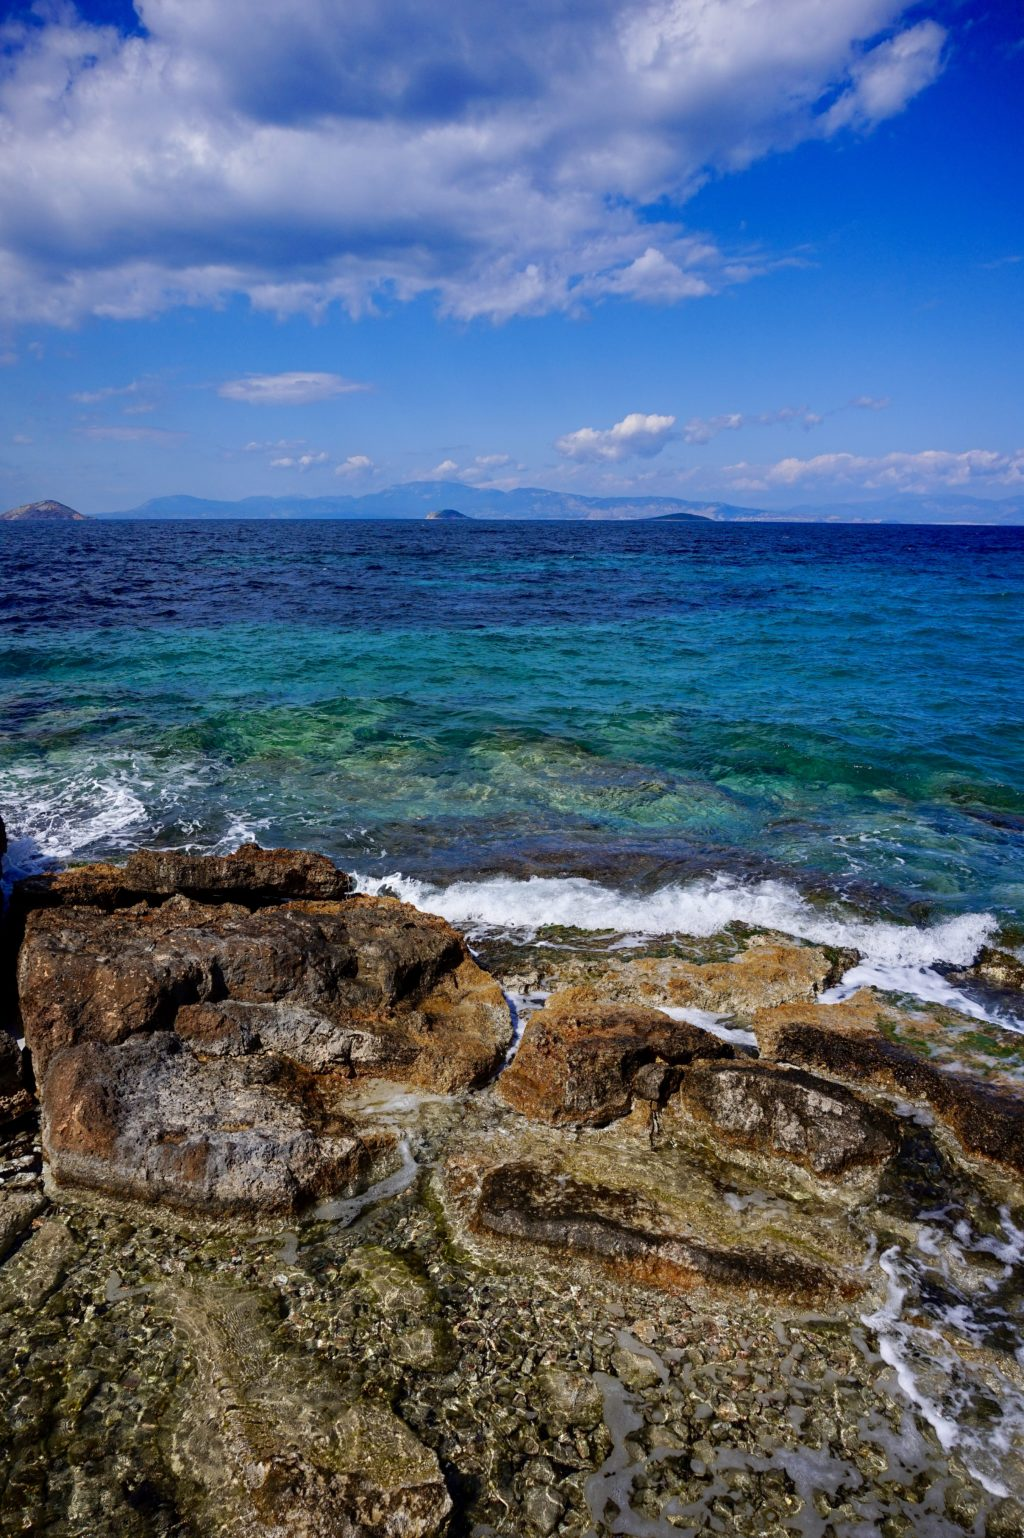 25 photos to inspire you to visit the island of Aegina, Greece